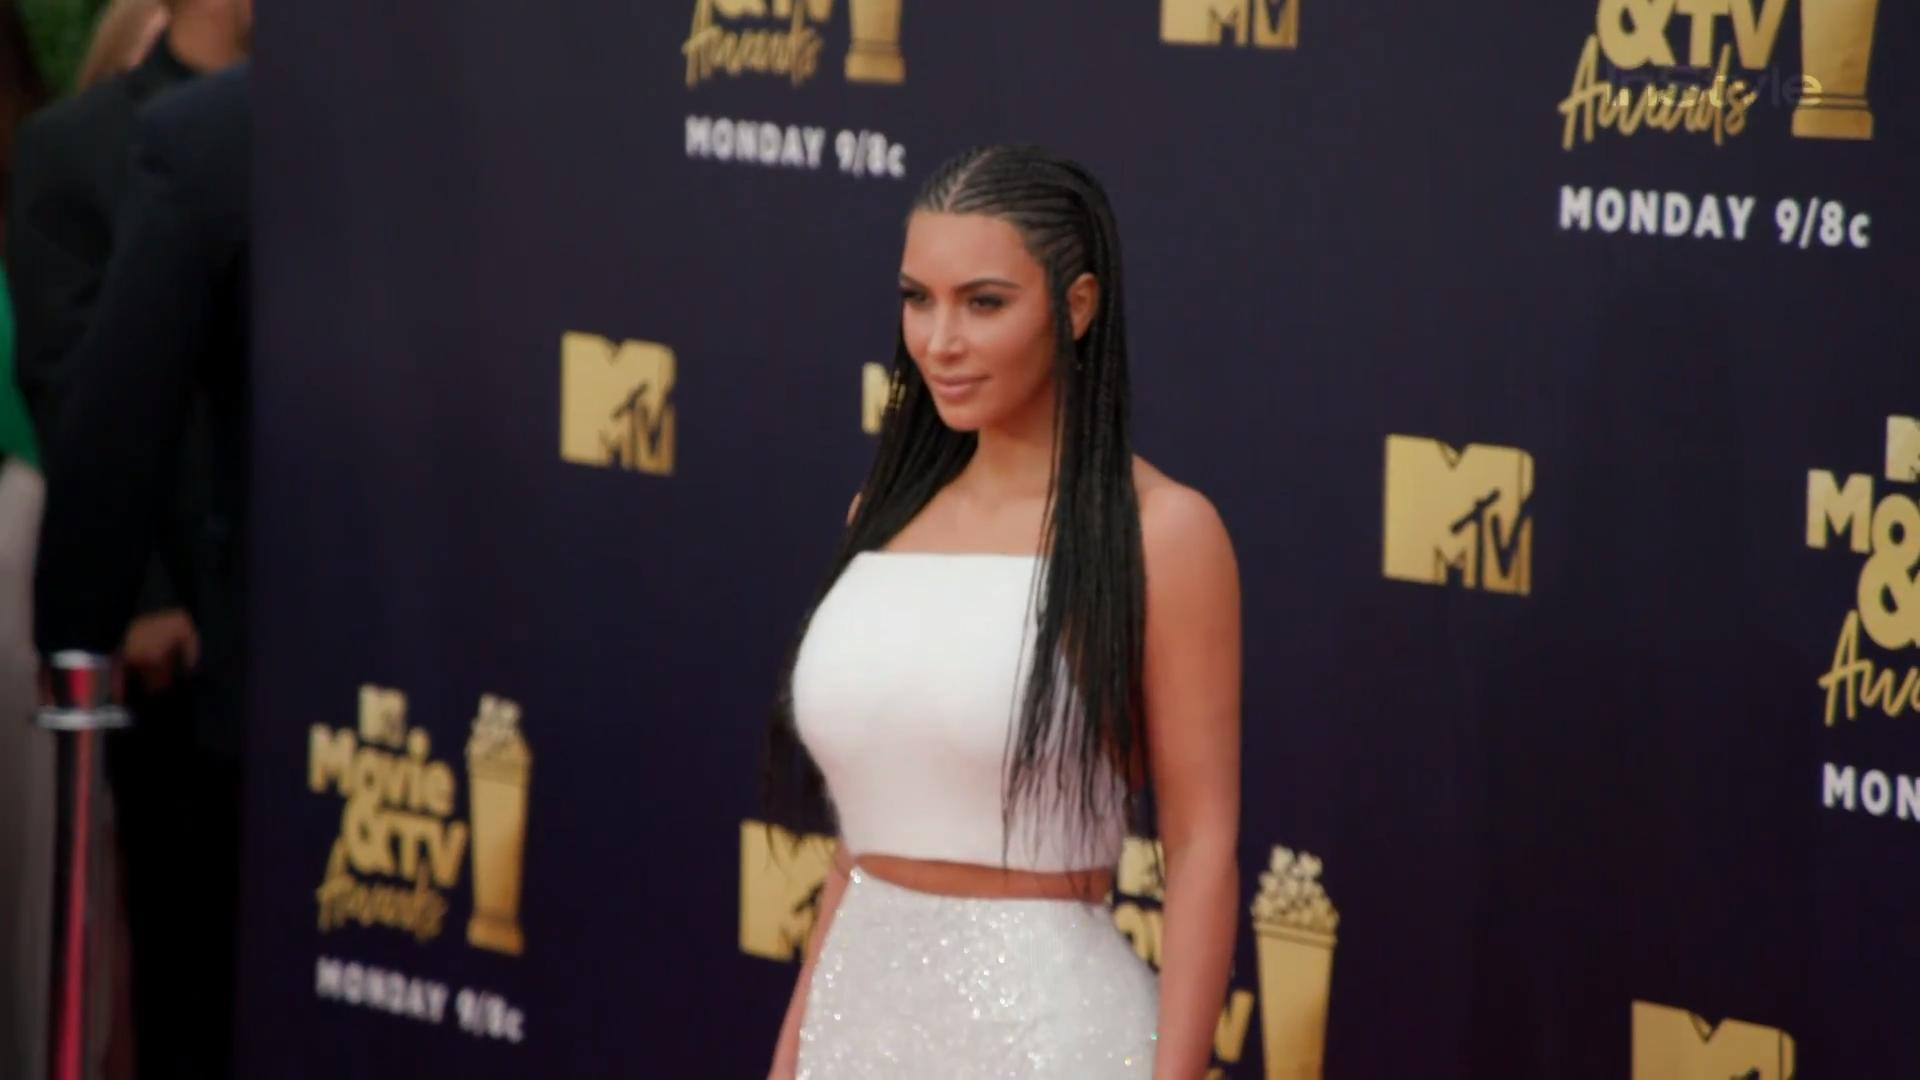 Kim Kardashian Wears Hair In Controversial Braids At Mtv Movie